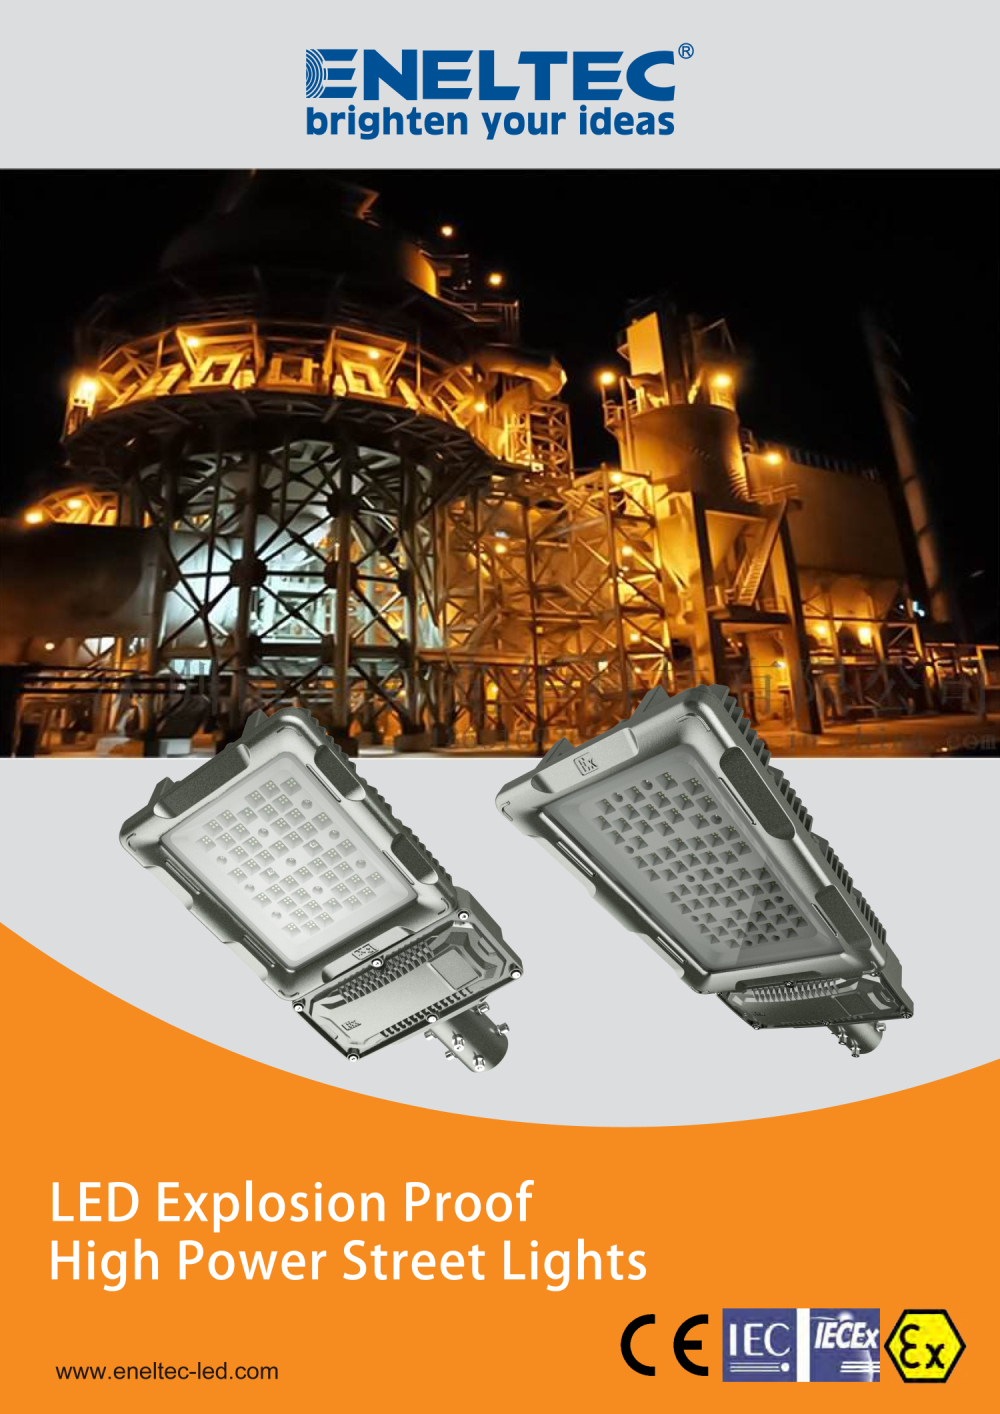 LED Explosion Proof High Power Street Lights